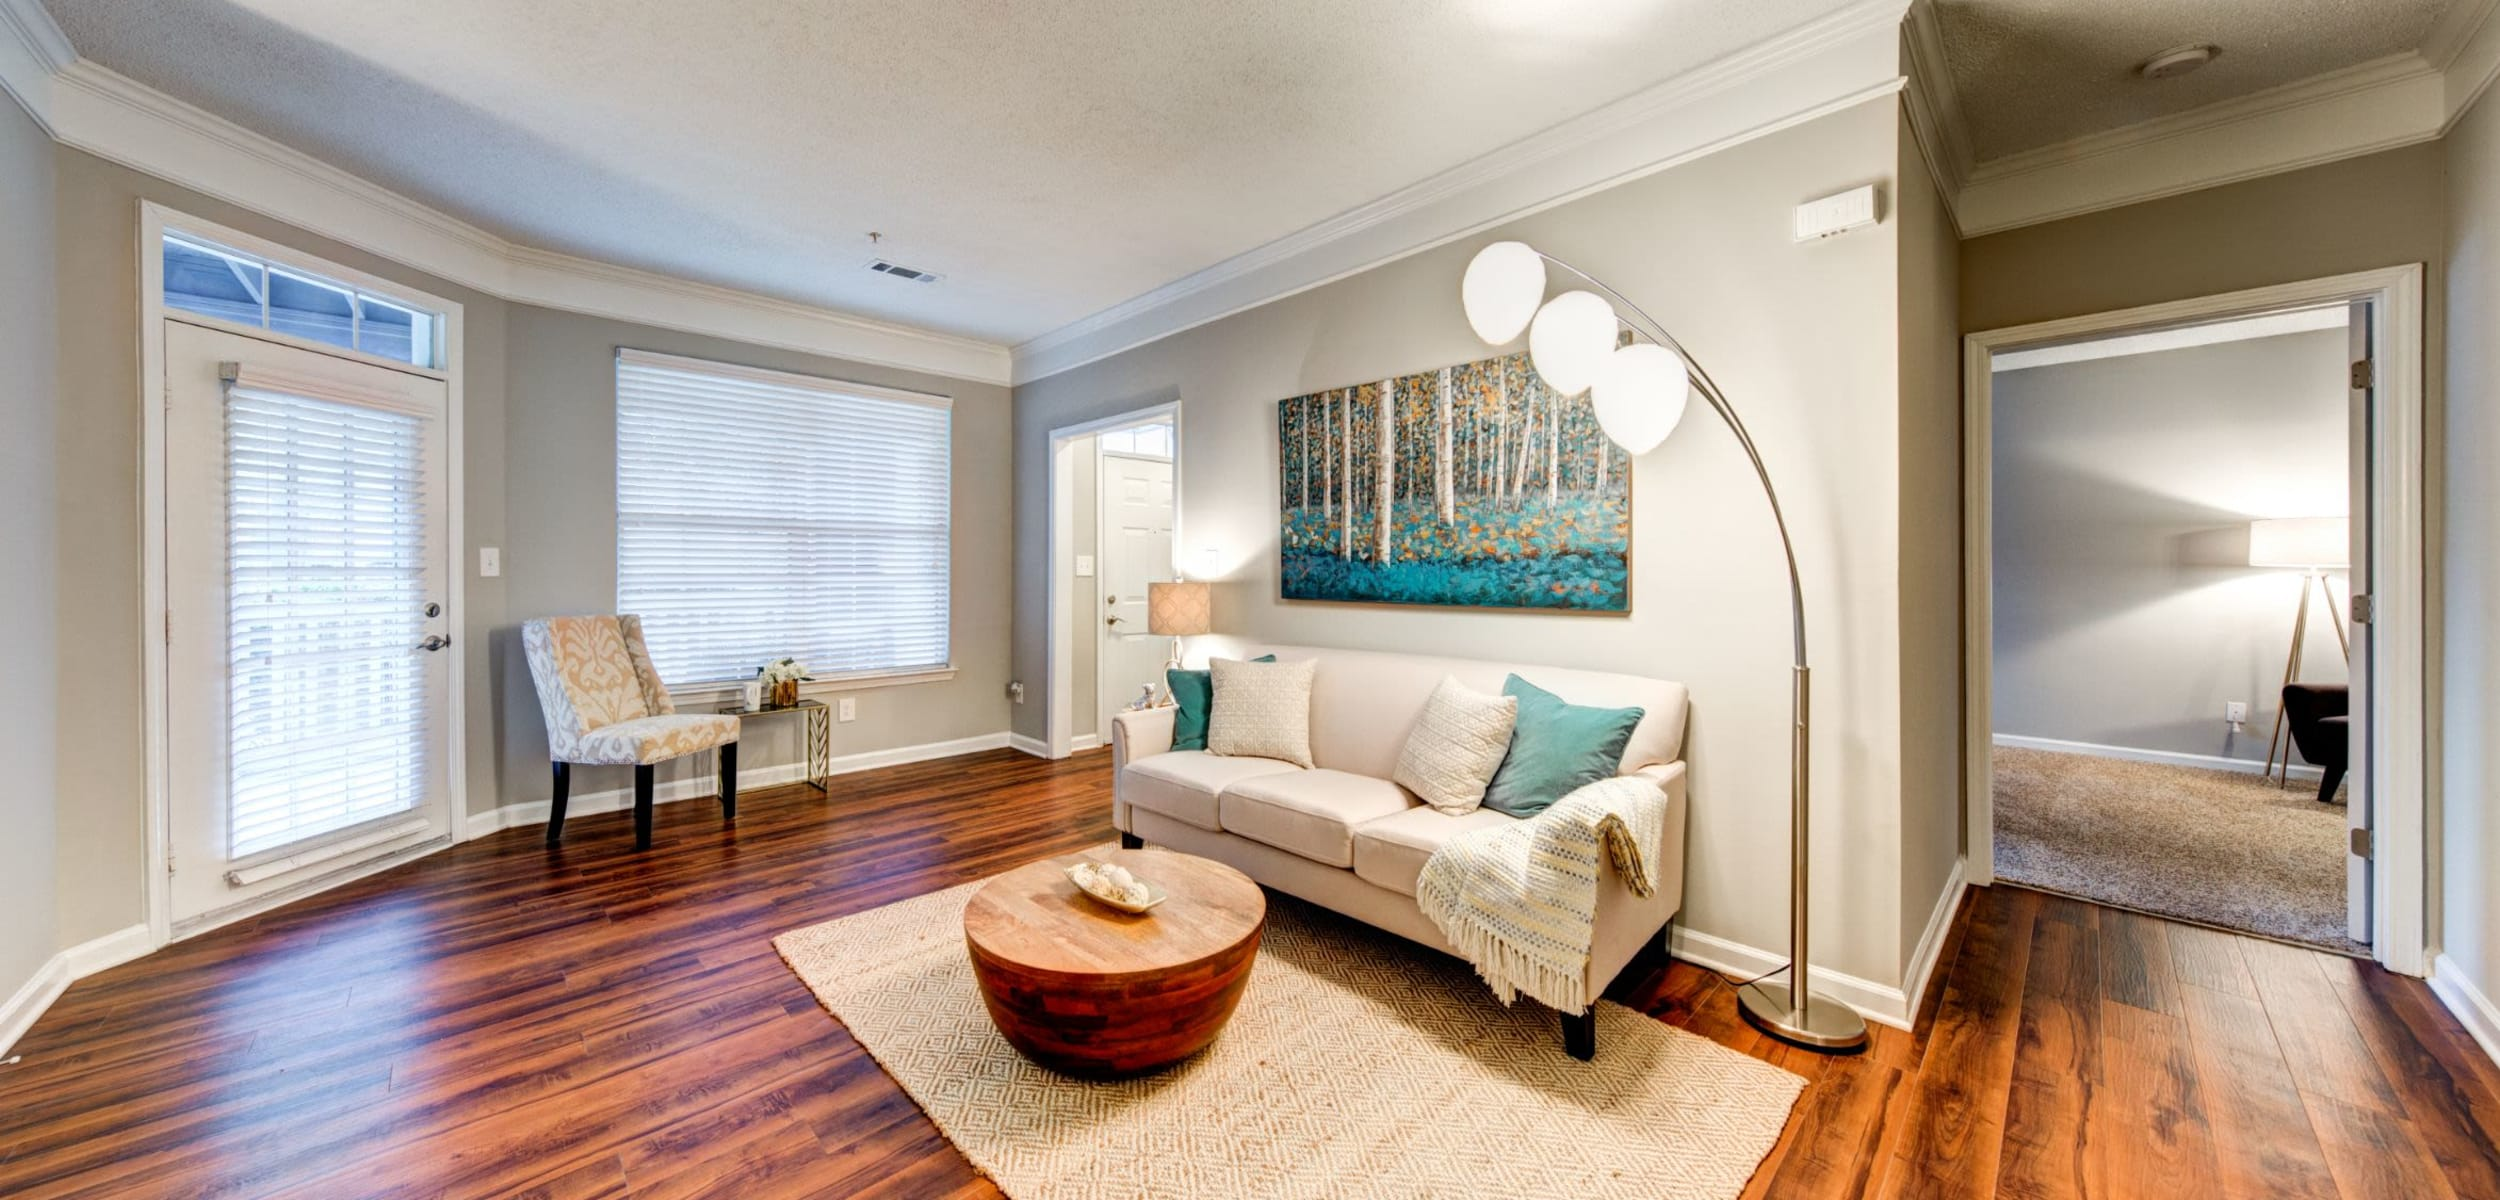 Bright living room with multiple windows and wood floors at Marquis on Edwards Mill in Raleigh, North Carolina